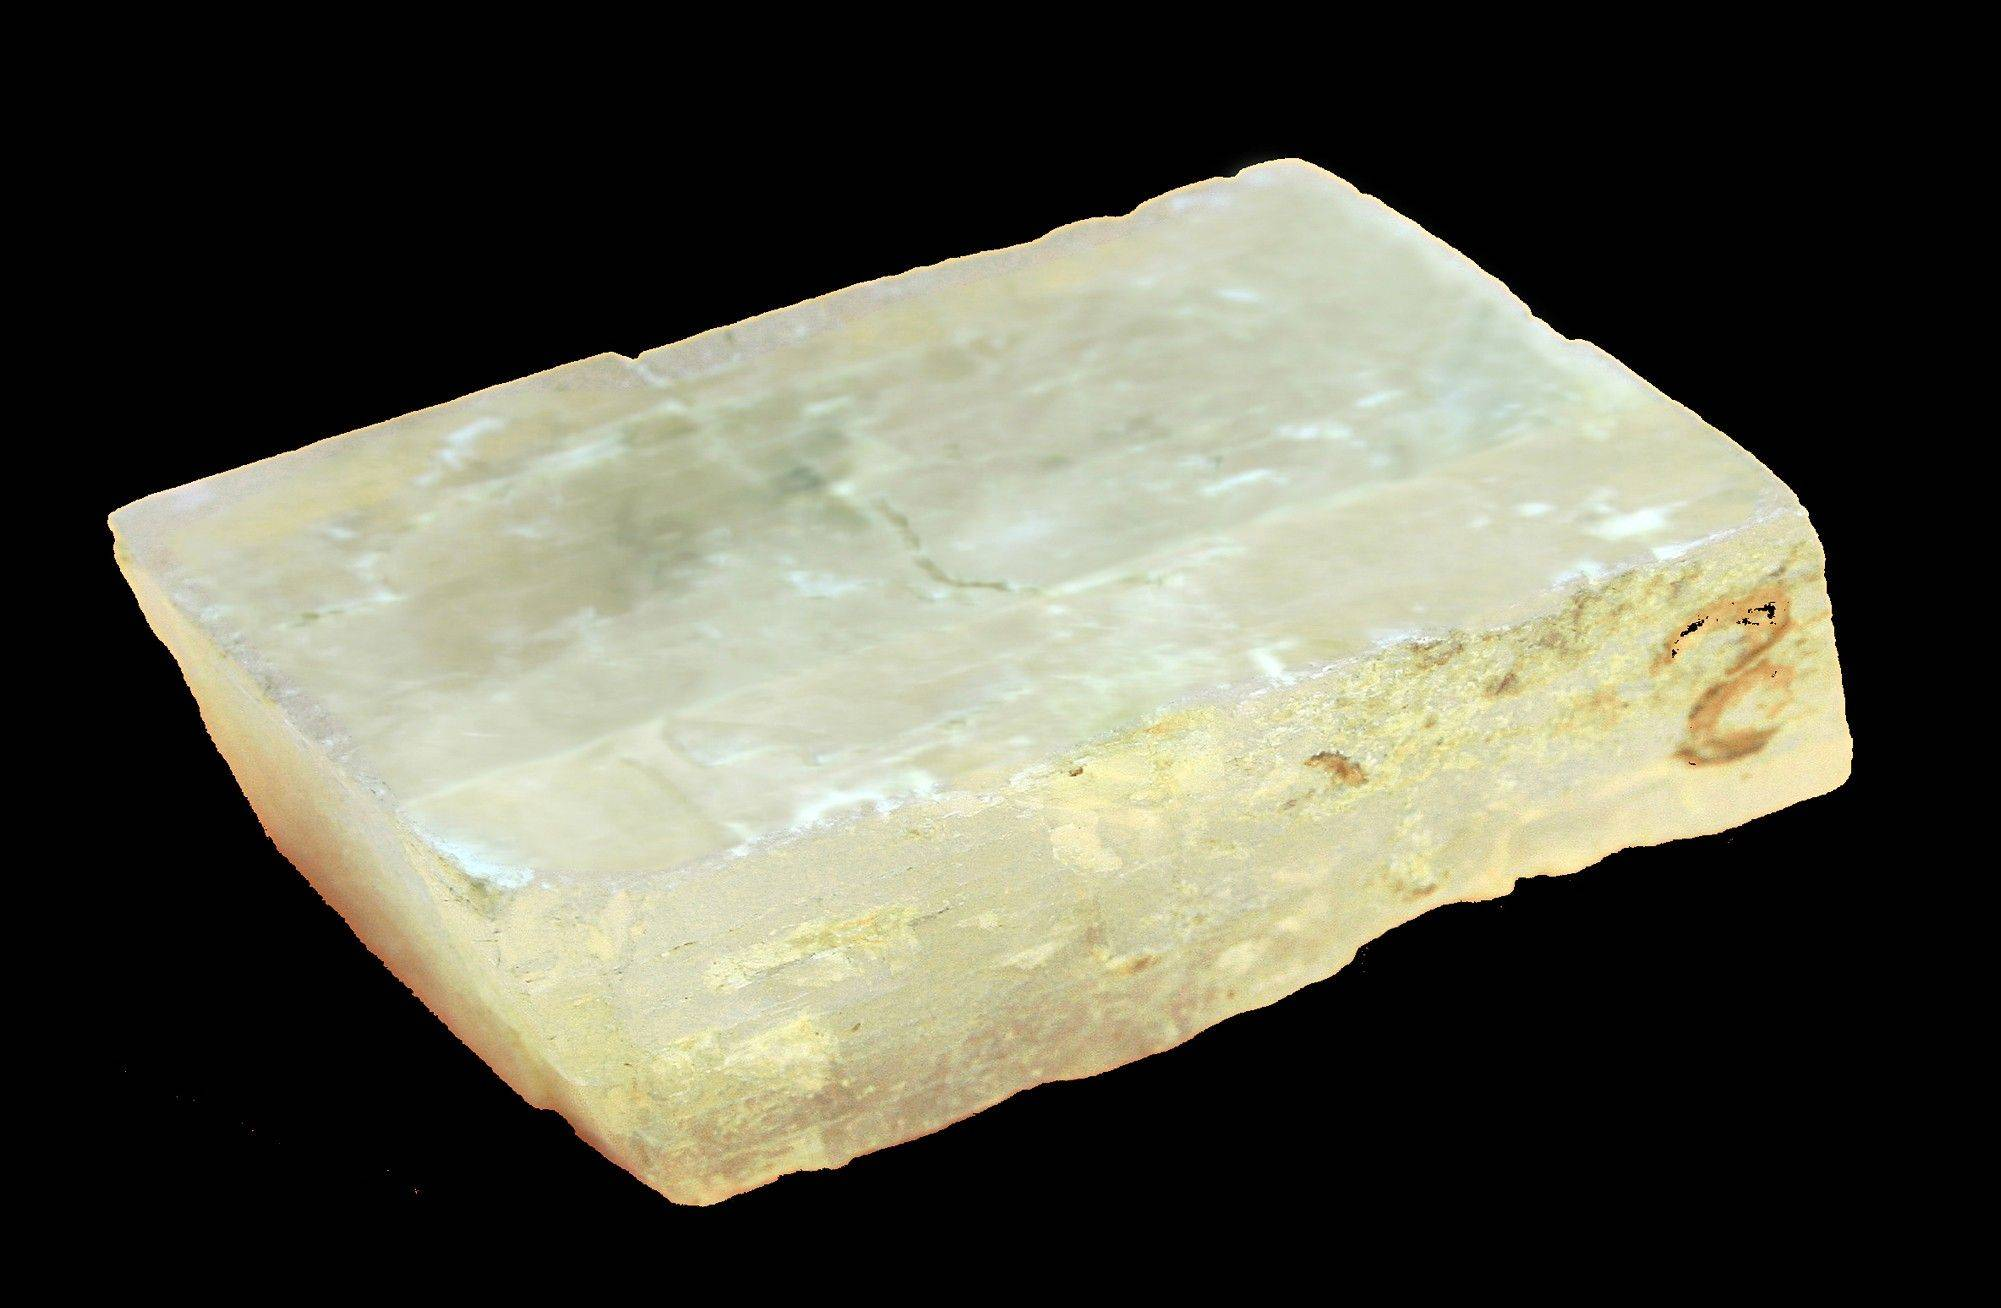 The Alderney Crystal, a piece of calcite. Researchers say the rough, whitish crystal recovered from the wreckage of 16th century English warship may be a sunstone.